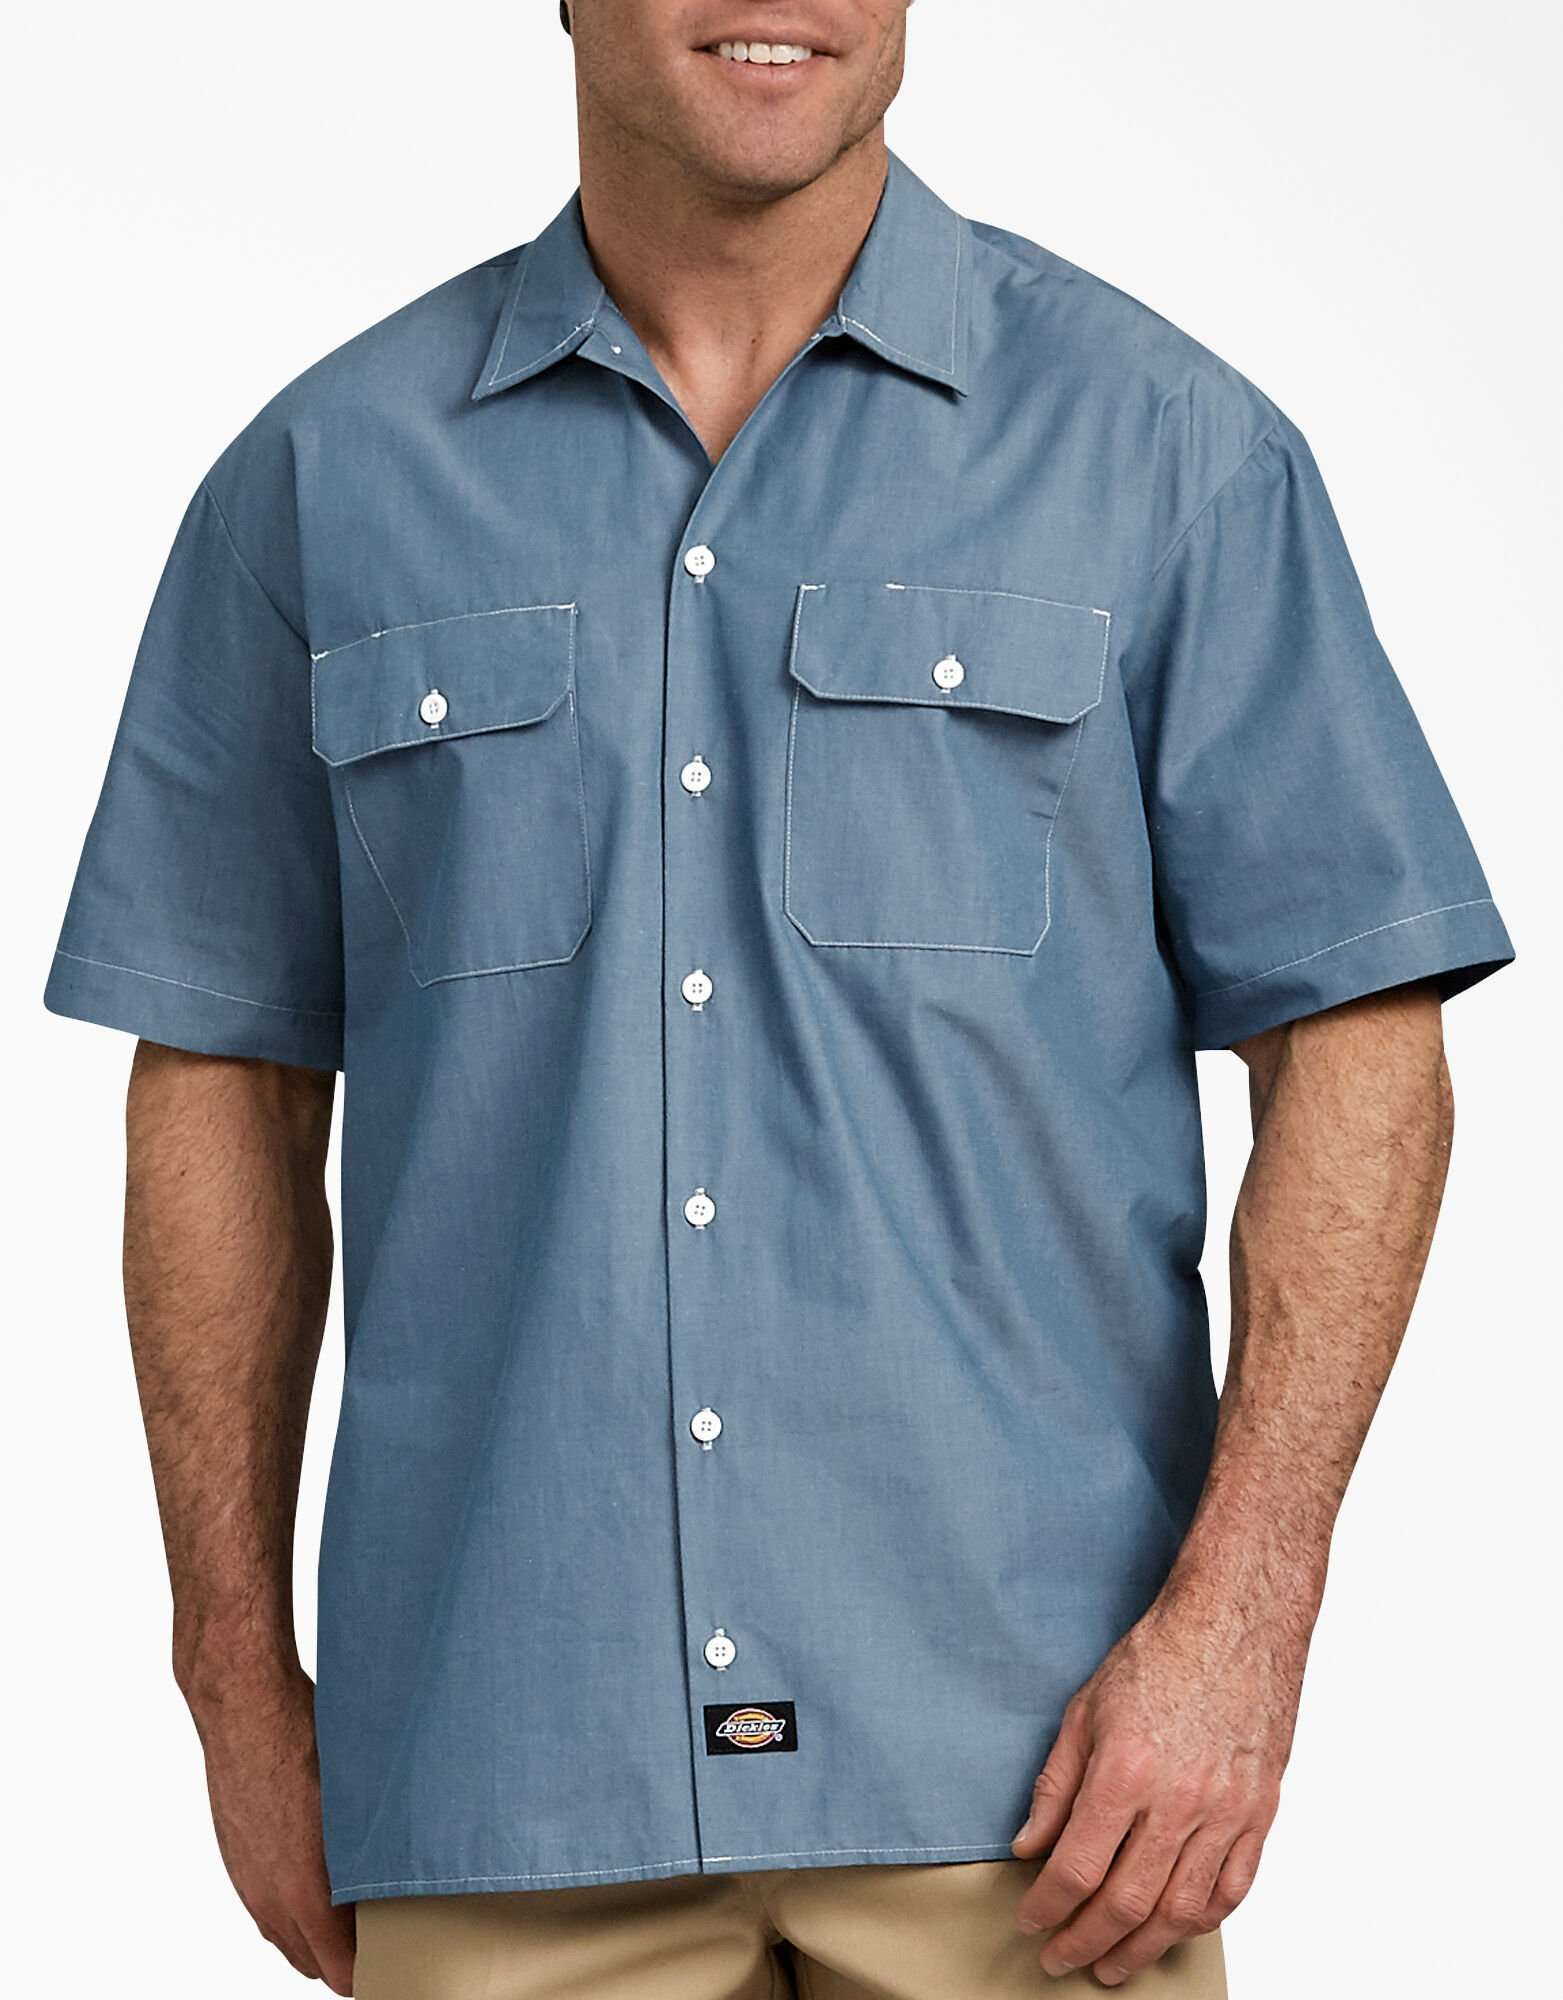 Unisex Relaxed Fit Short-Sleeve Chambray Shirt